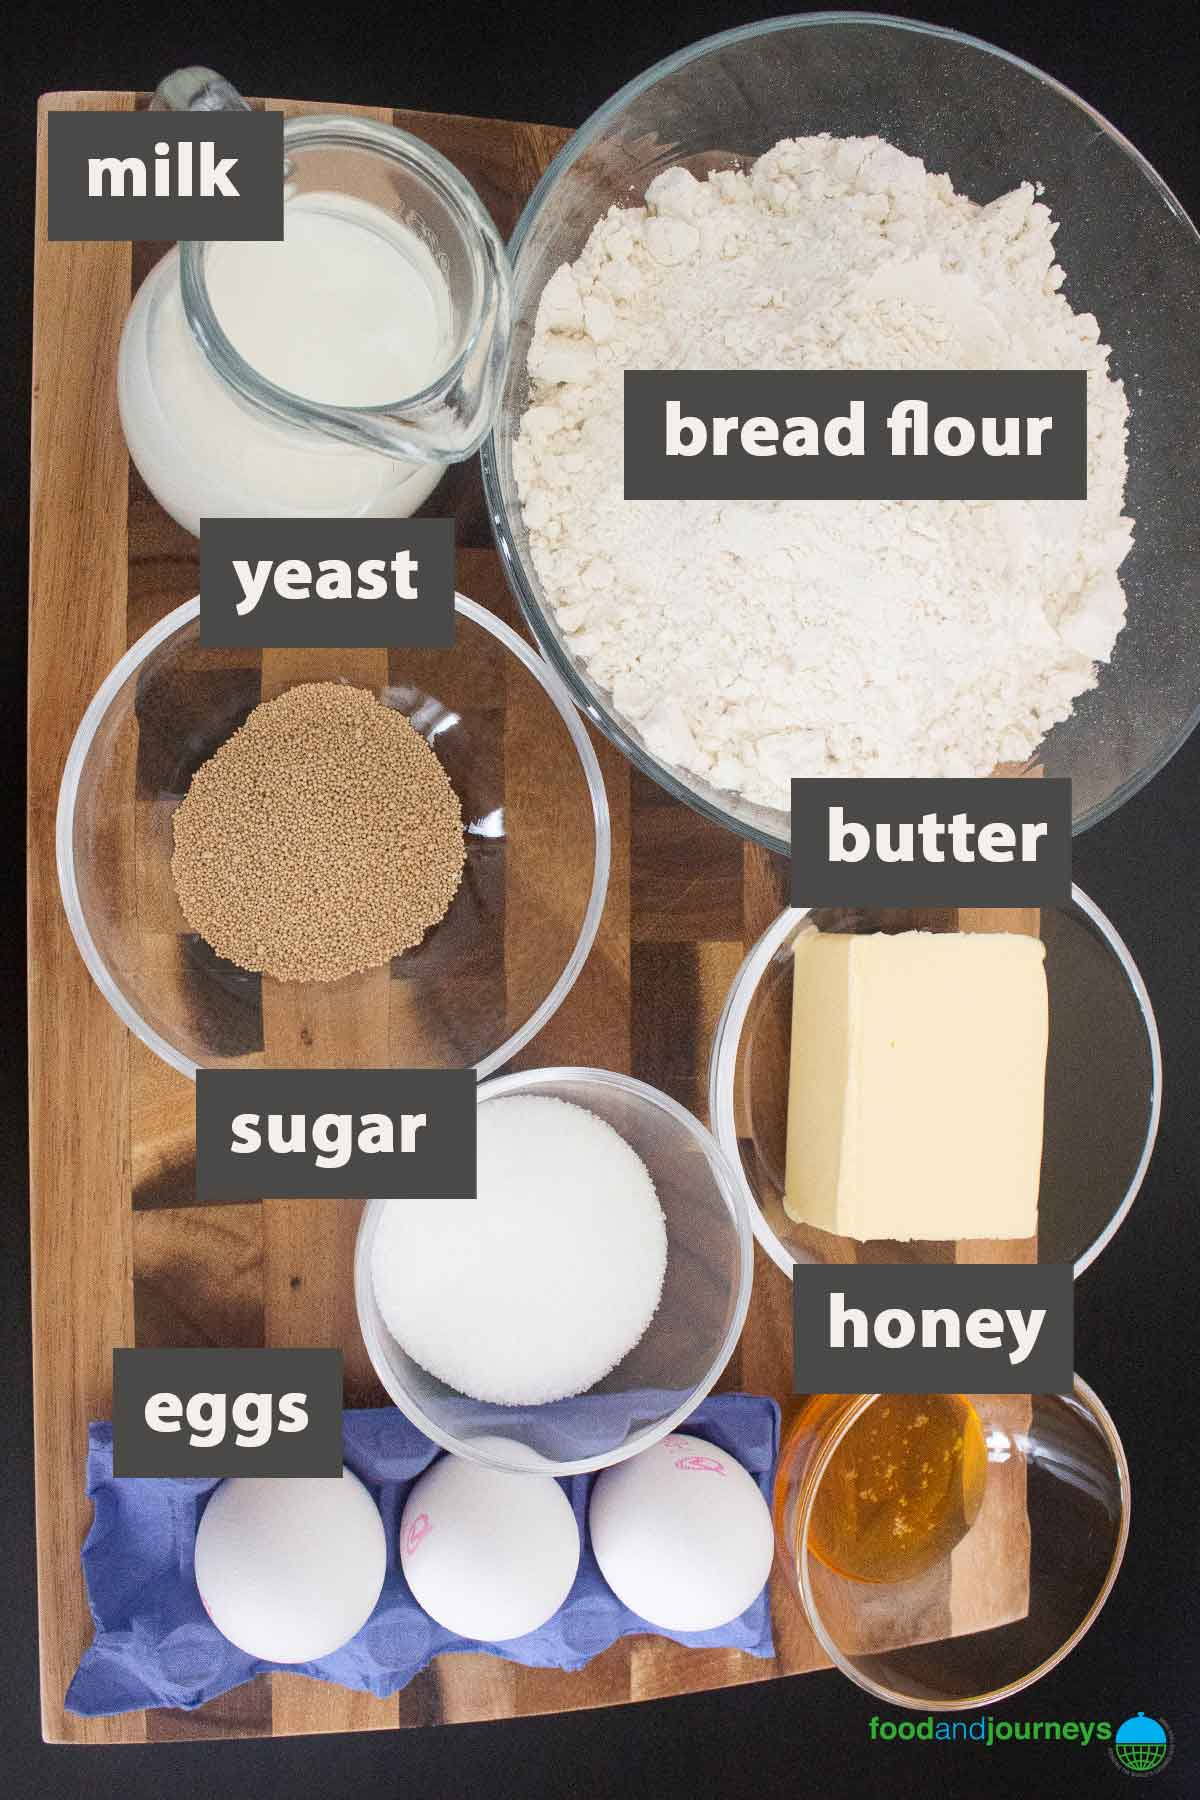 May2021 Updated image for ingredients needed for making Sicilian brioche at home.